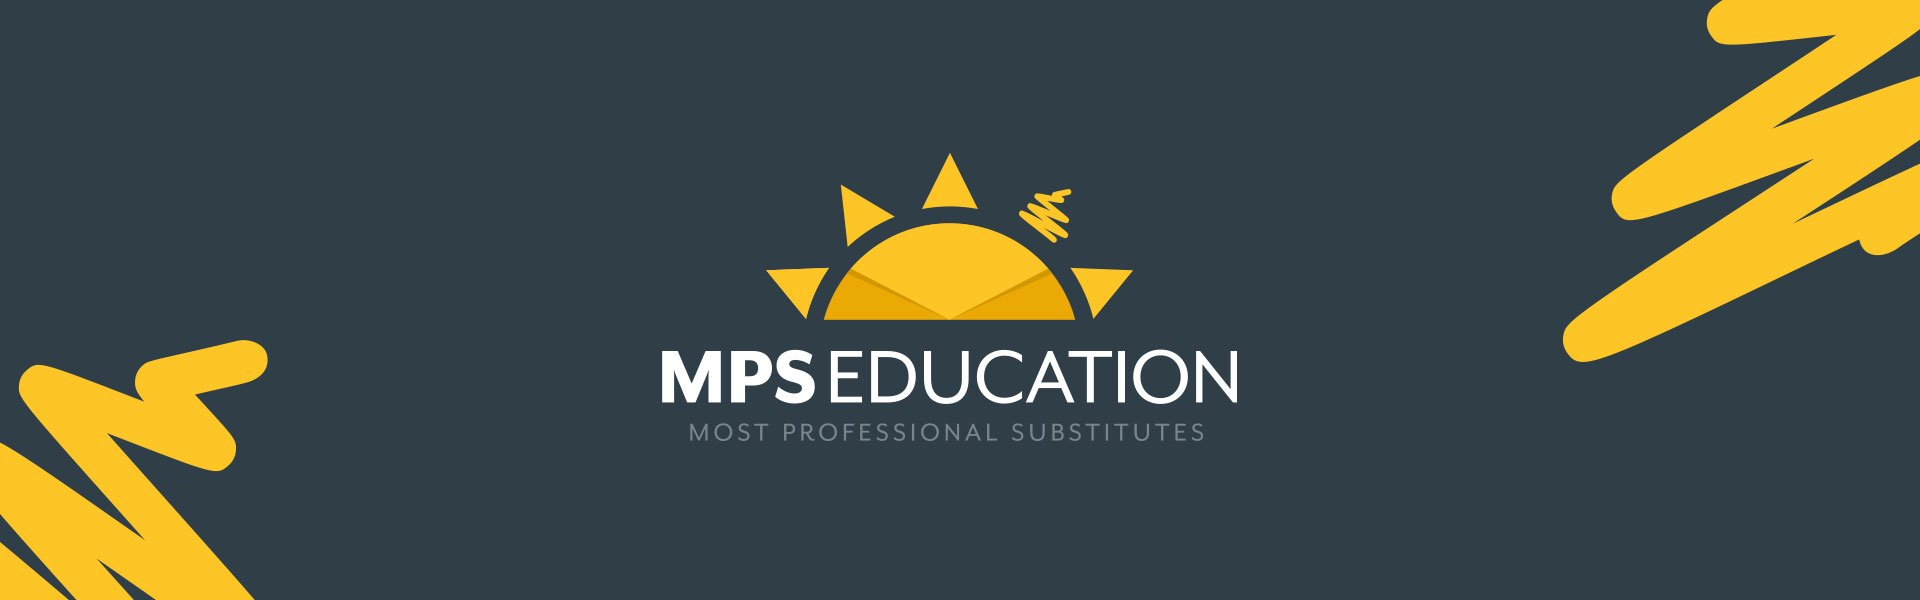 MPS Education brand